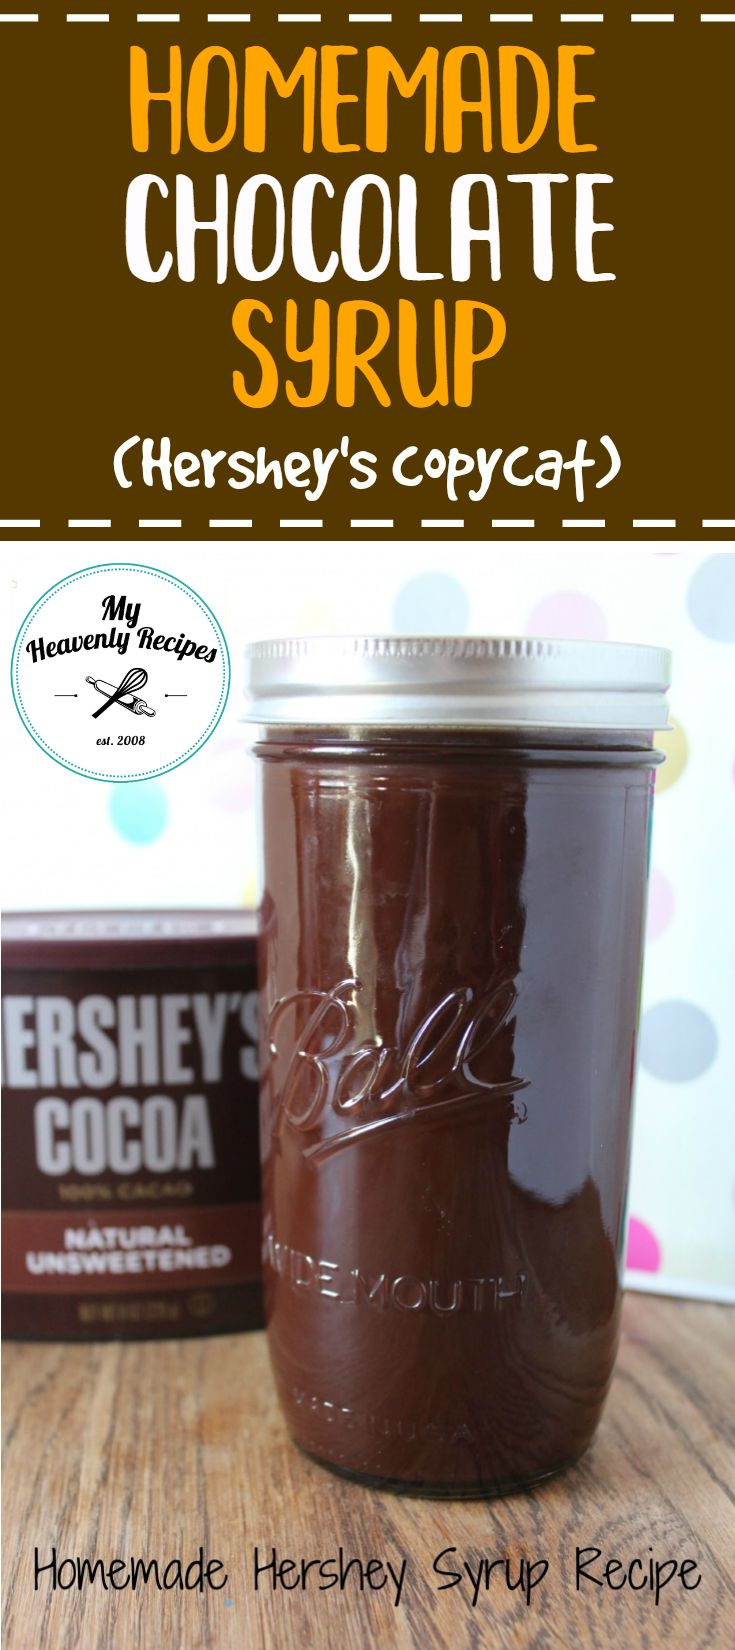 This Homemade Chocolate Syrup Recipe is super simple to make and will be a staple in your fridge for years to come. A great homemade Hershey's syrup! It's one of my favorite copycat recipes. #copycatrecipe #chocolate #chocolaterecipes